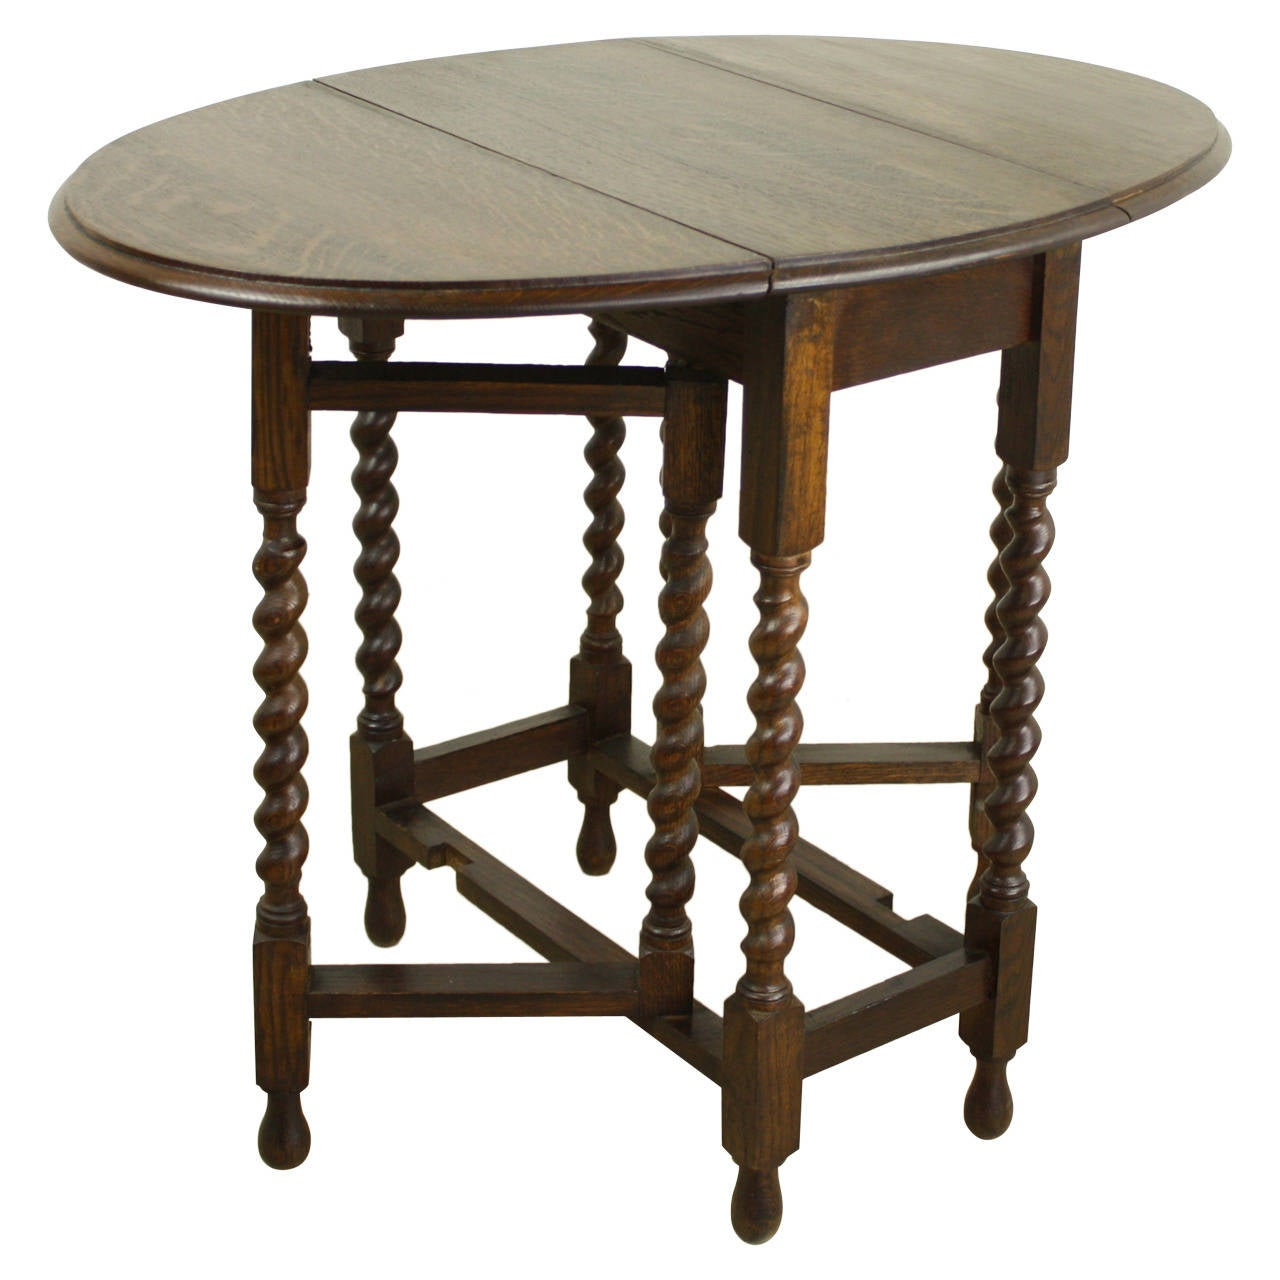 this small antique english barley twist gateleg table is no longer